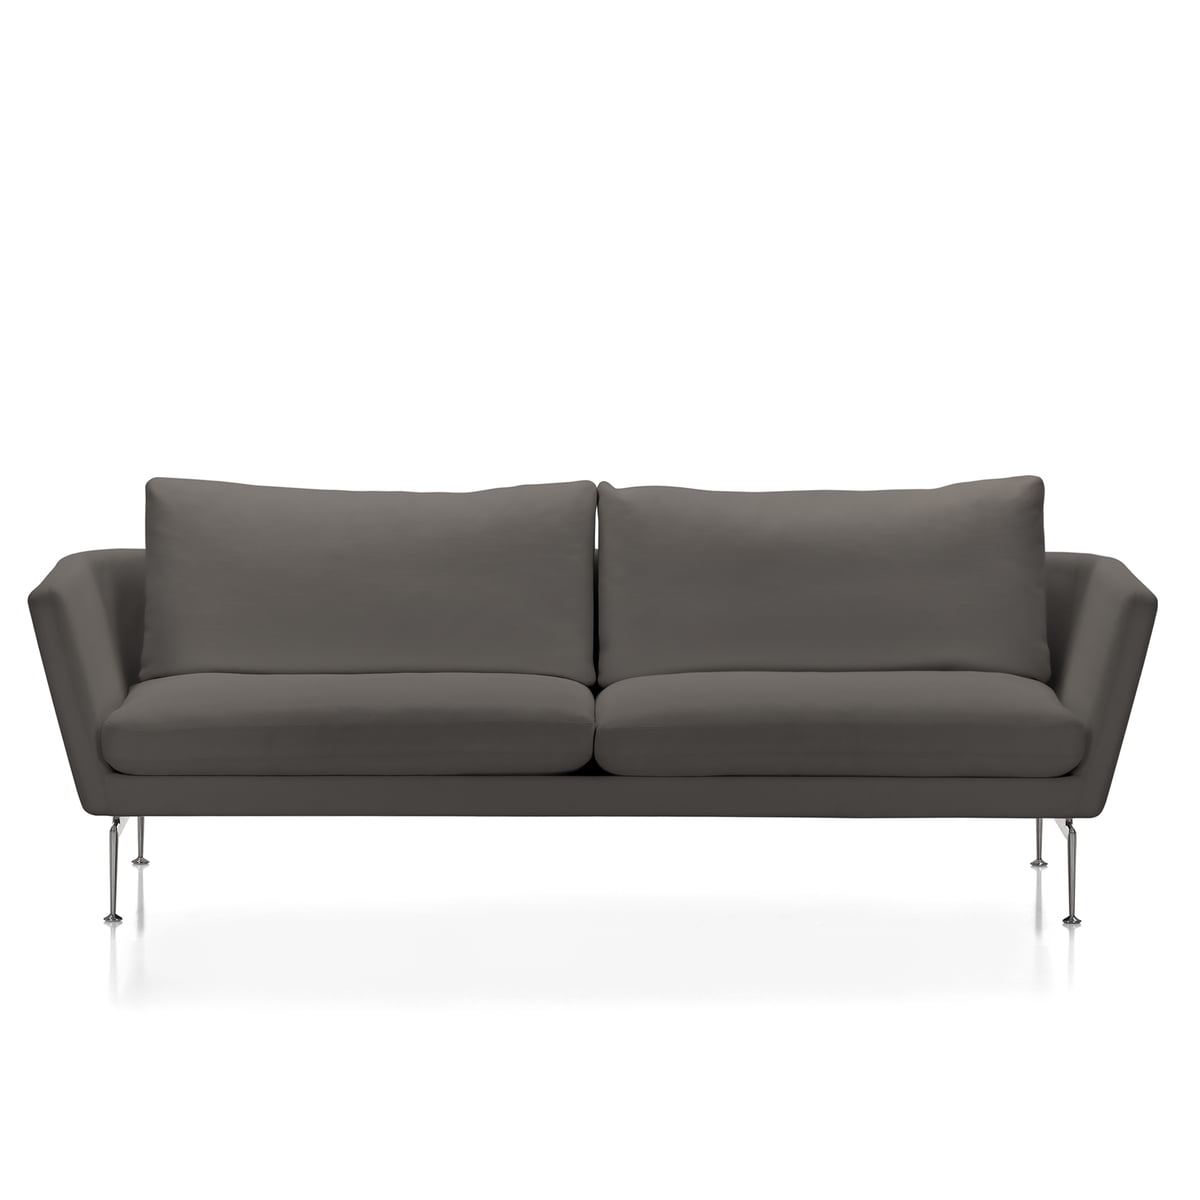 Suita sofa by vitra connox shop for Sofa dreisitzer